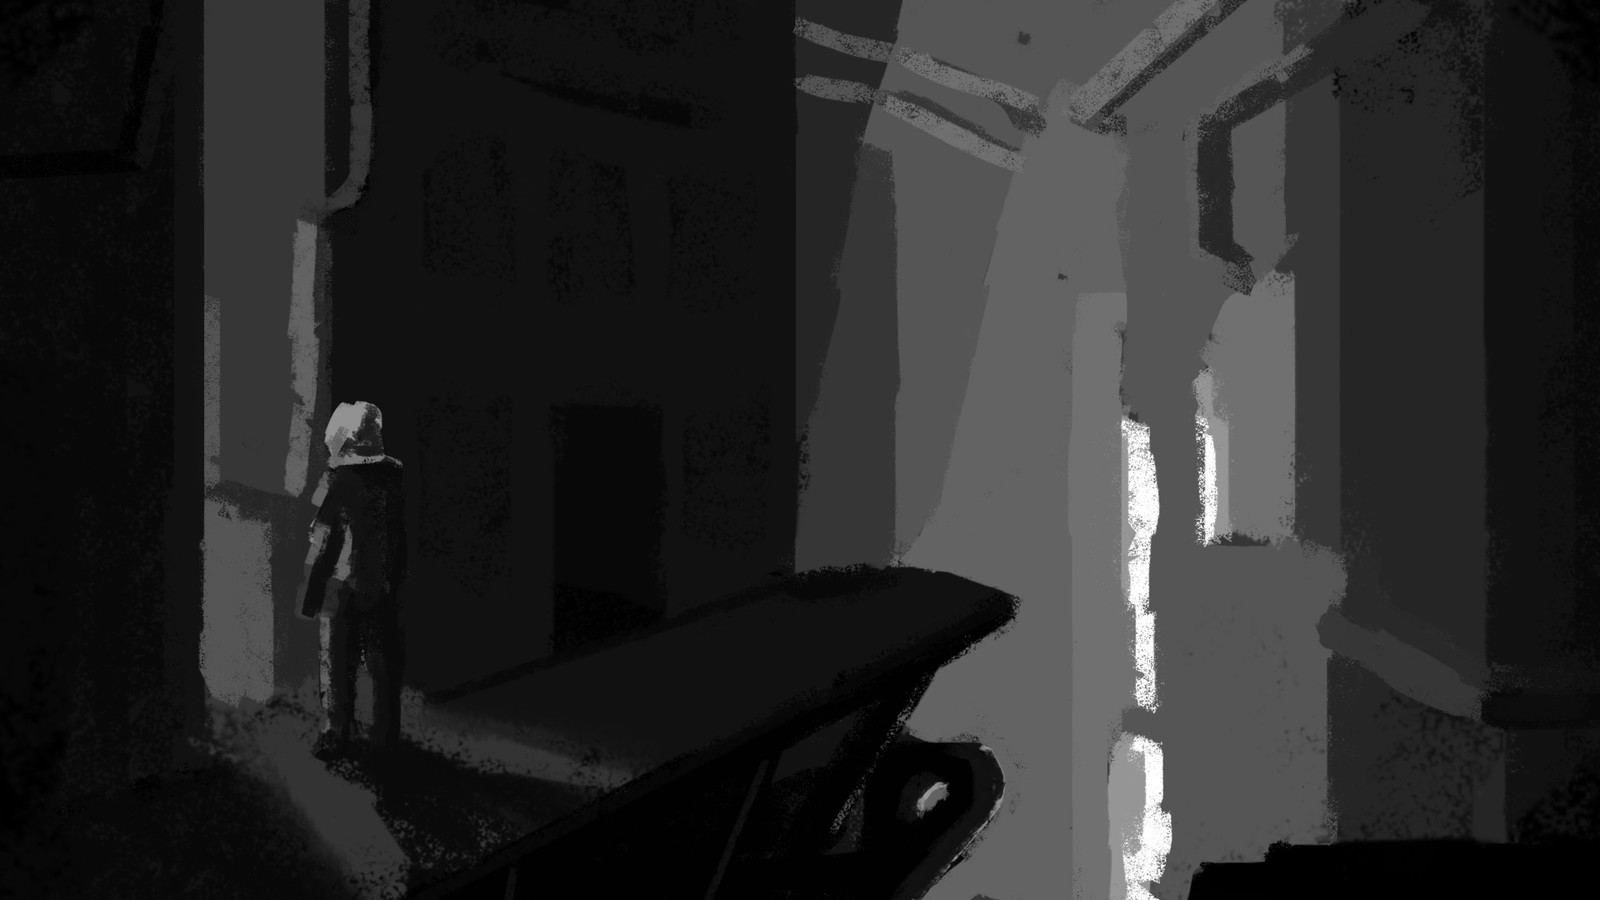 Value study, original concept from a frame in the animation.